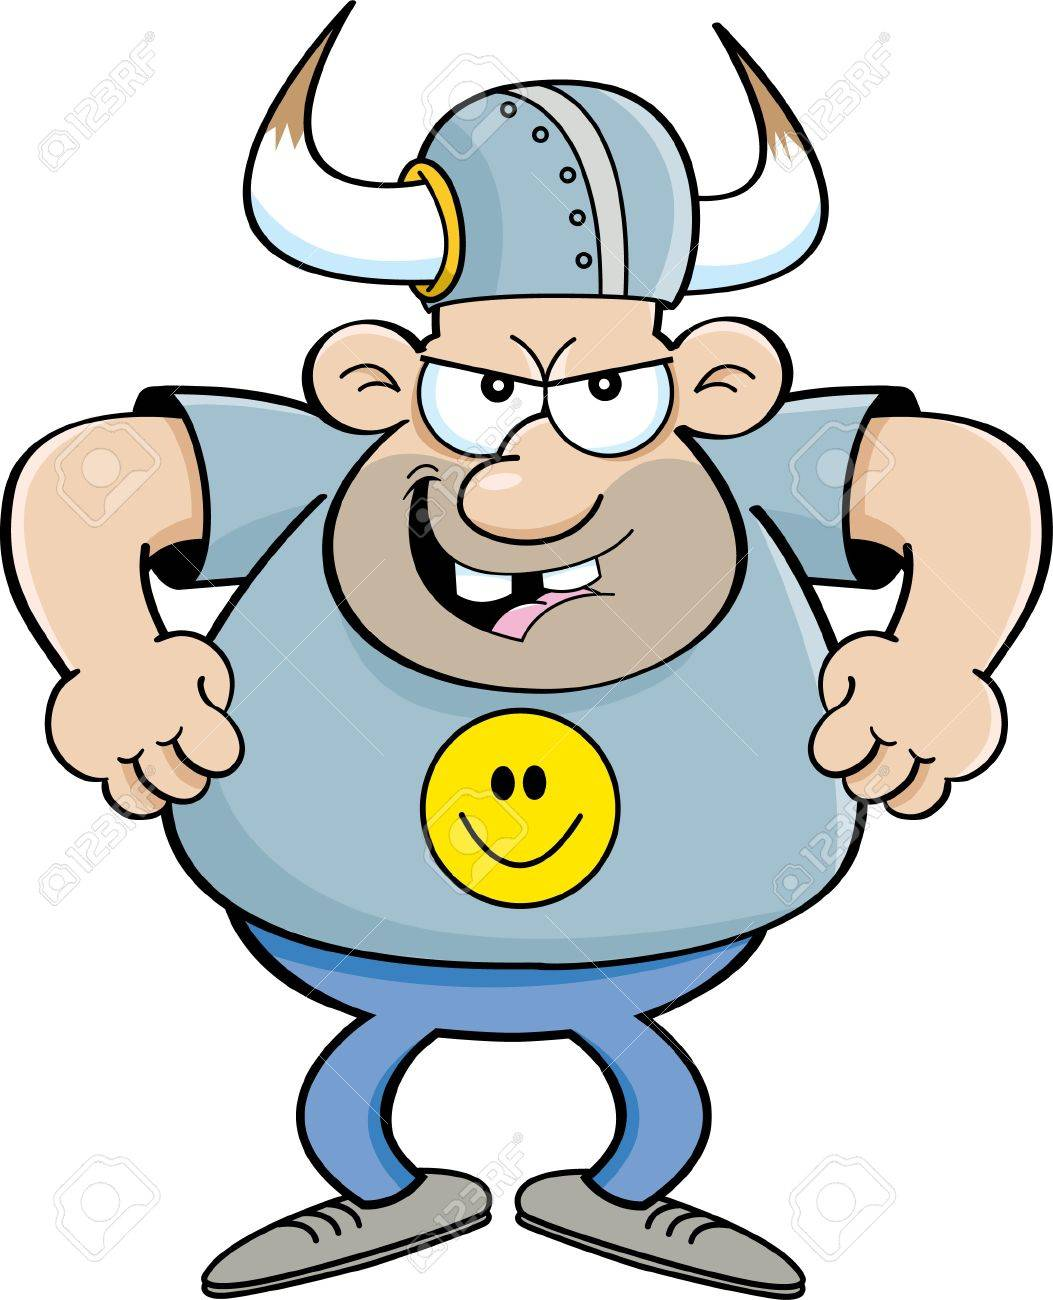 1053x1300 Cartoon Illustration Of An Angry Man Wearing A Viking Helmet